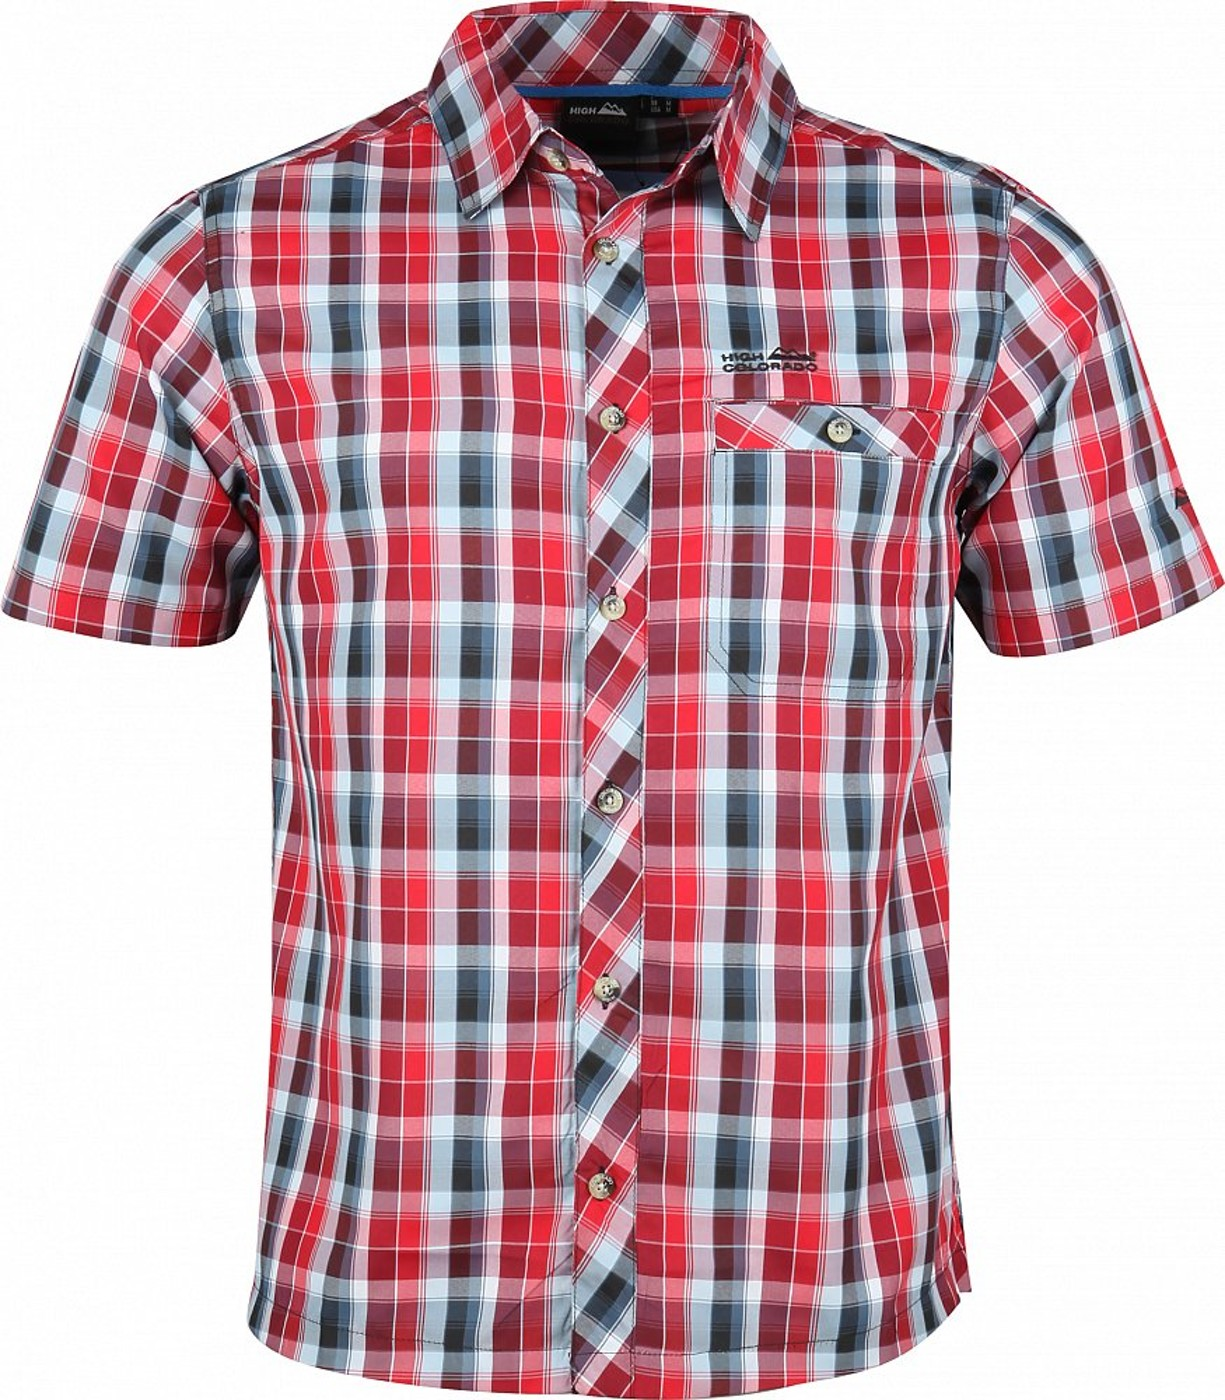 HIGH COLORADO WERTACH SHIRT-M - Herren